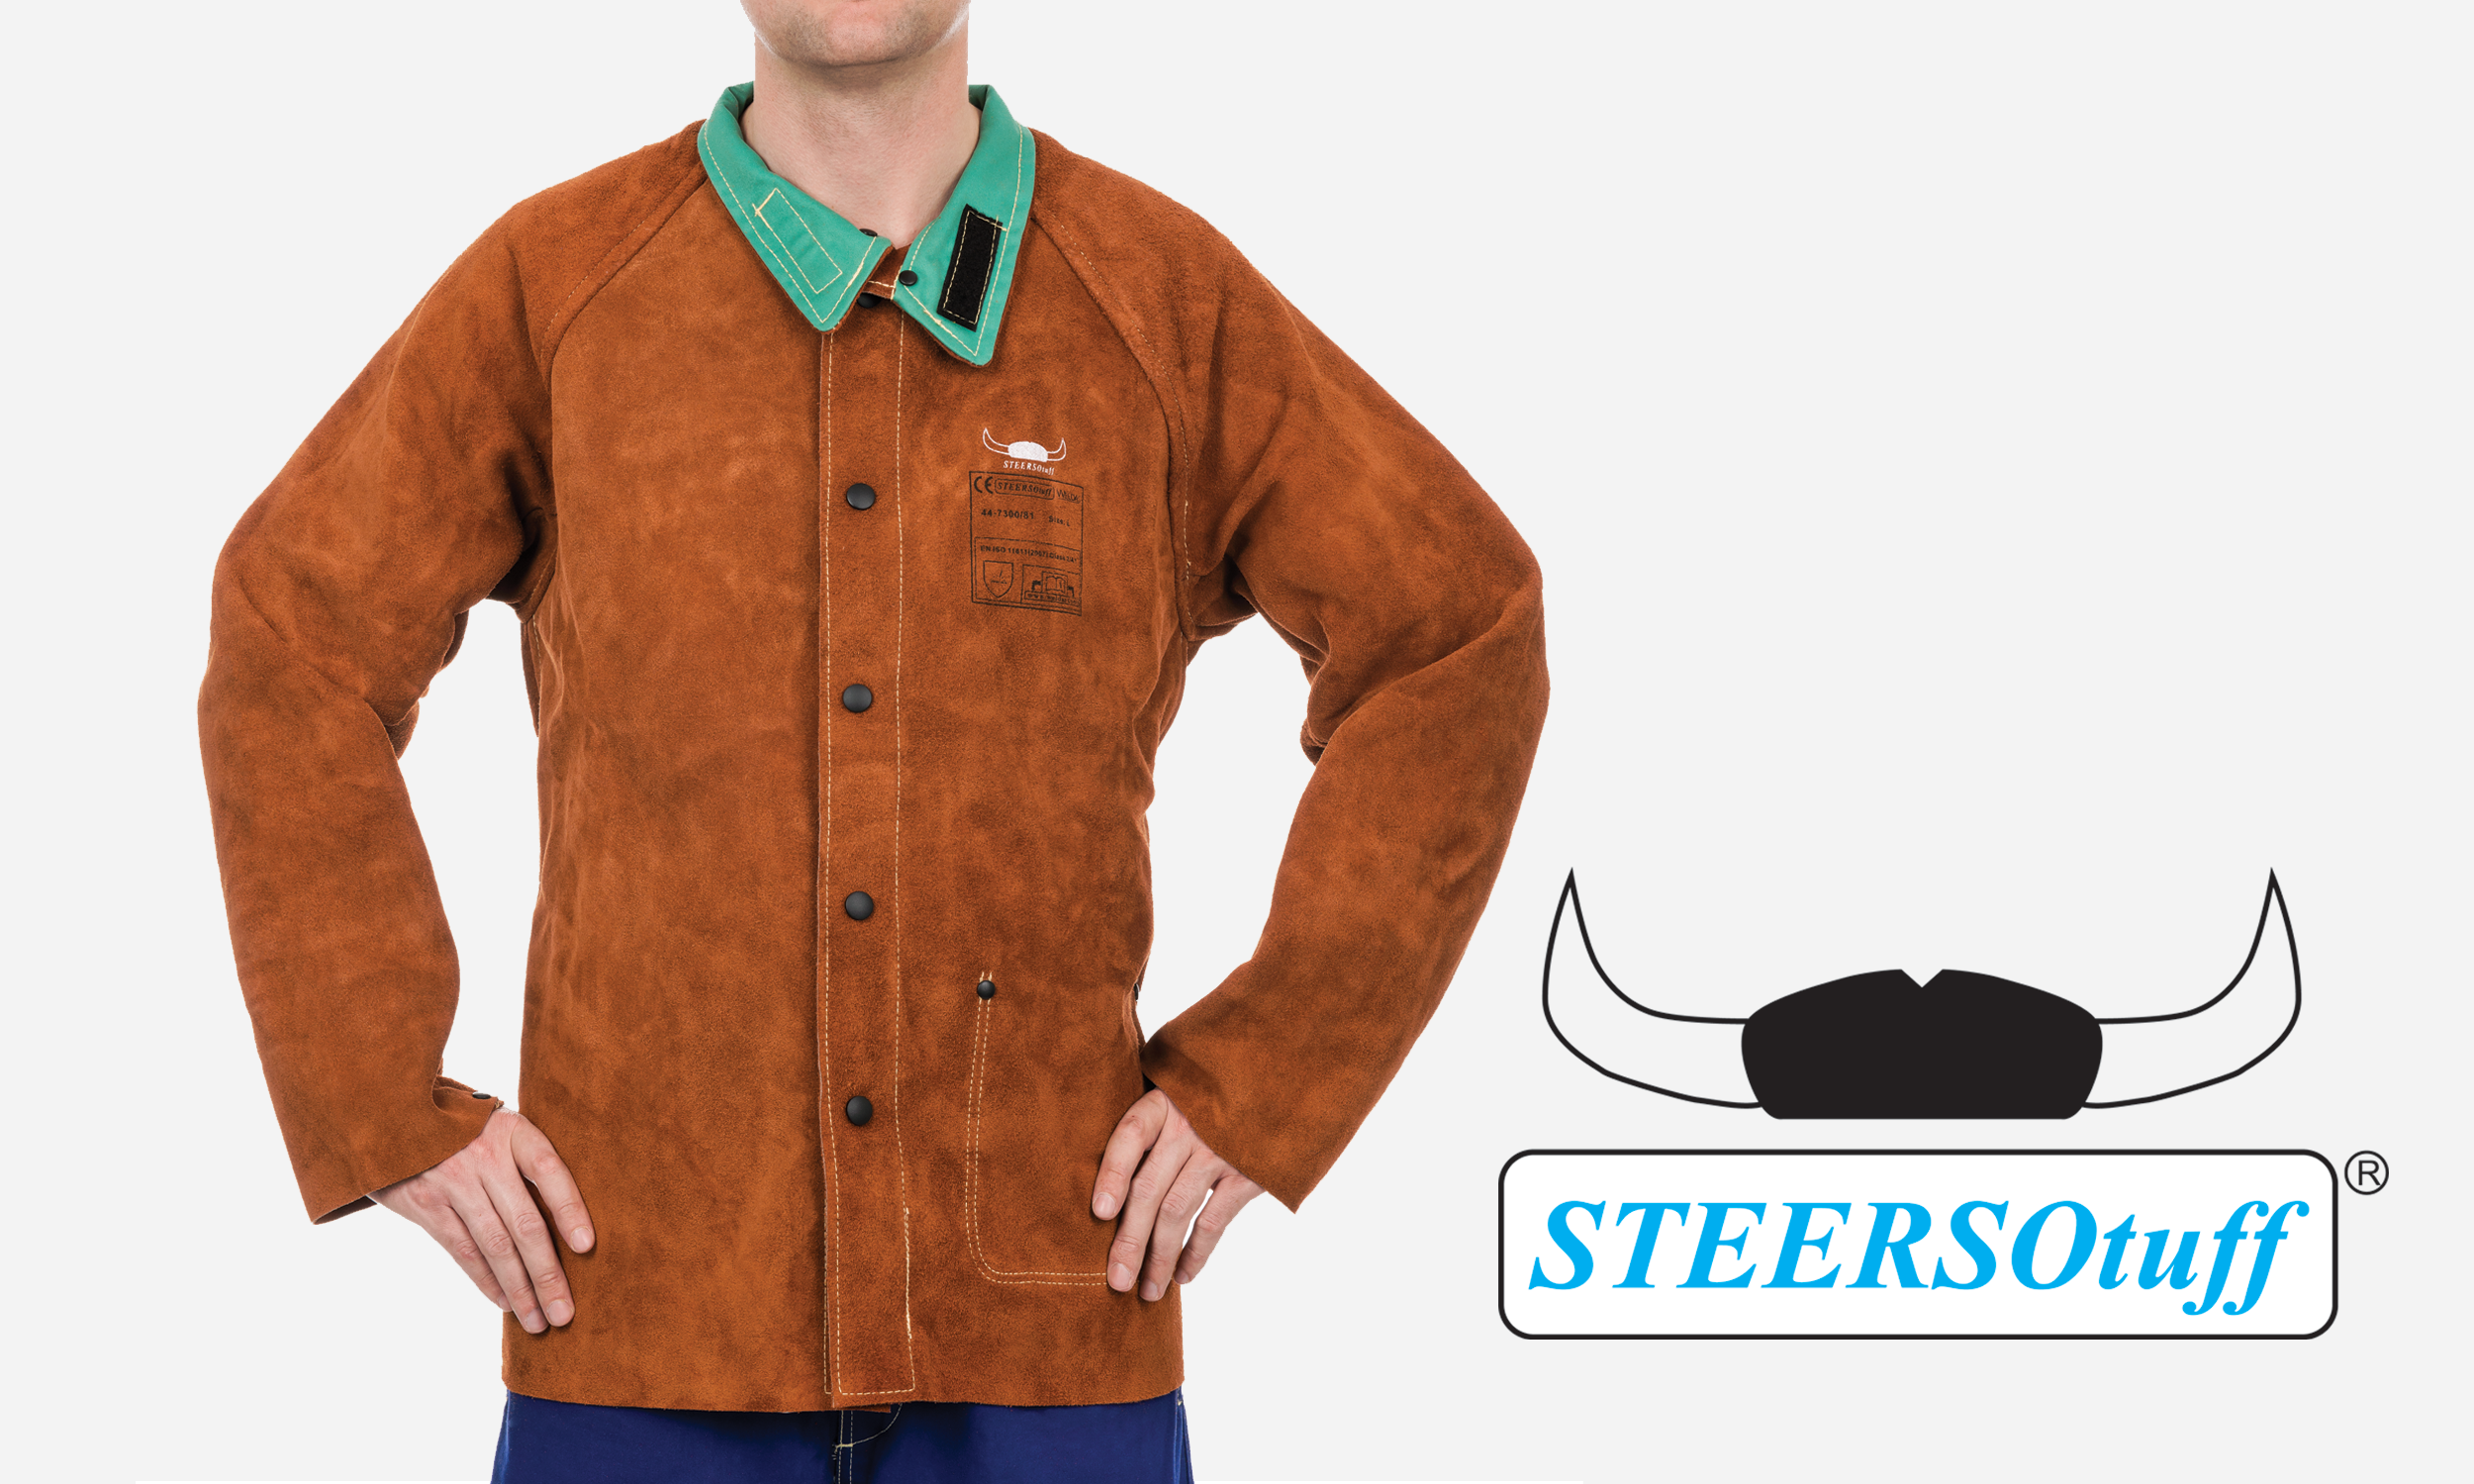 44-7300 STEERSOtuff Leather Jacket.png